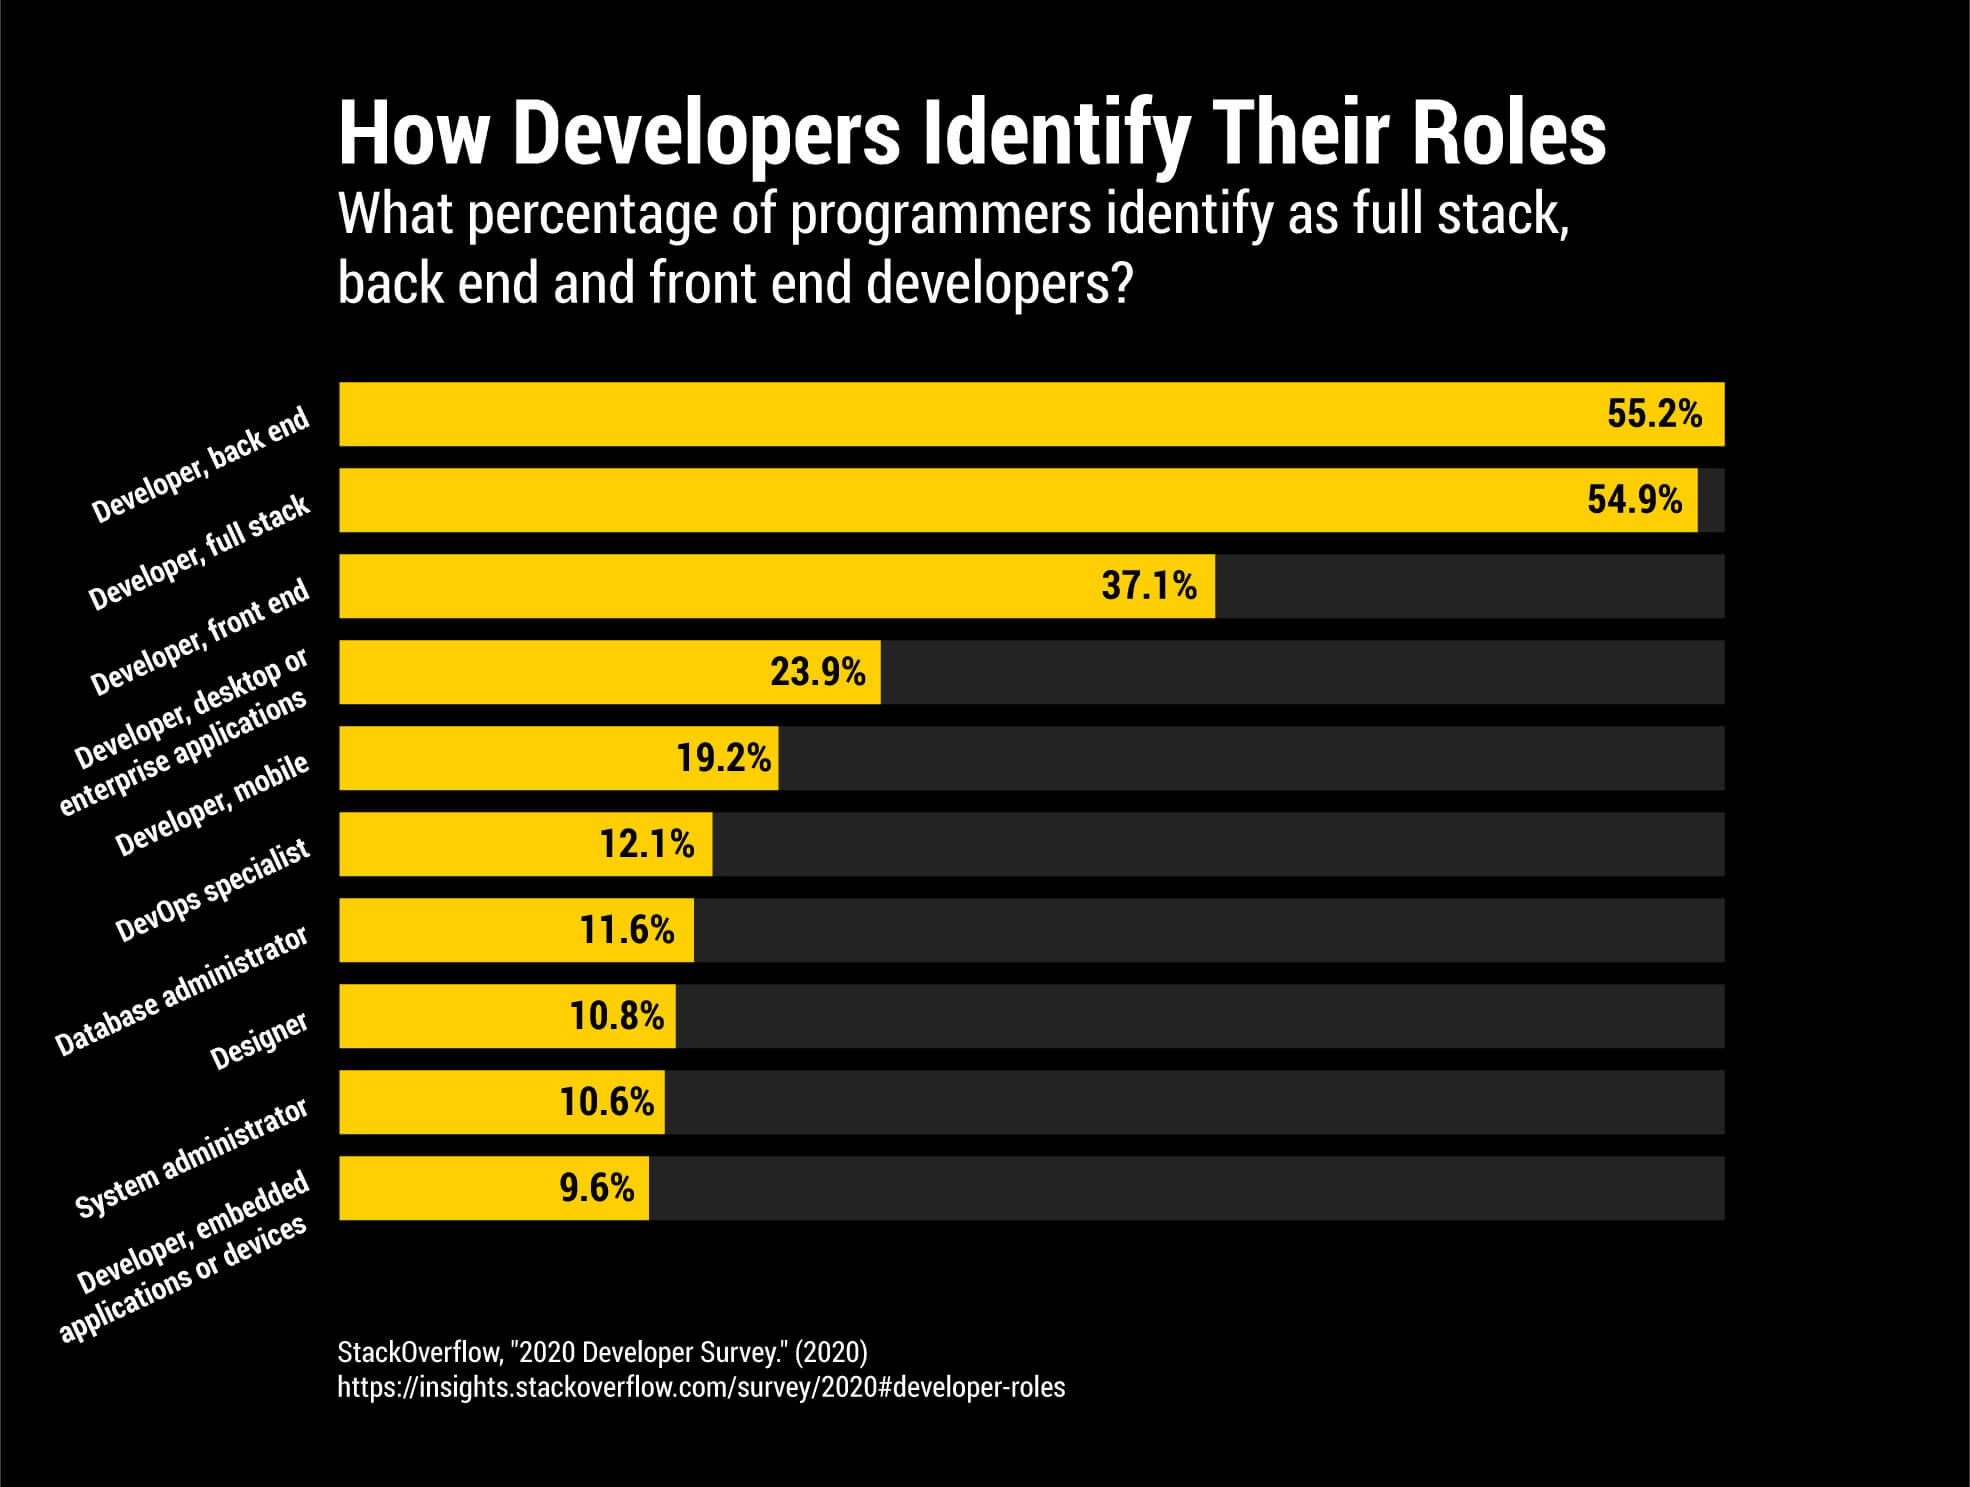 A graph showing what percentage of developers identify as full stack, front end, and back end